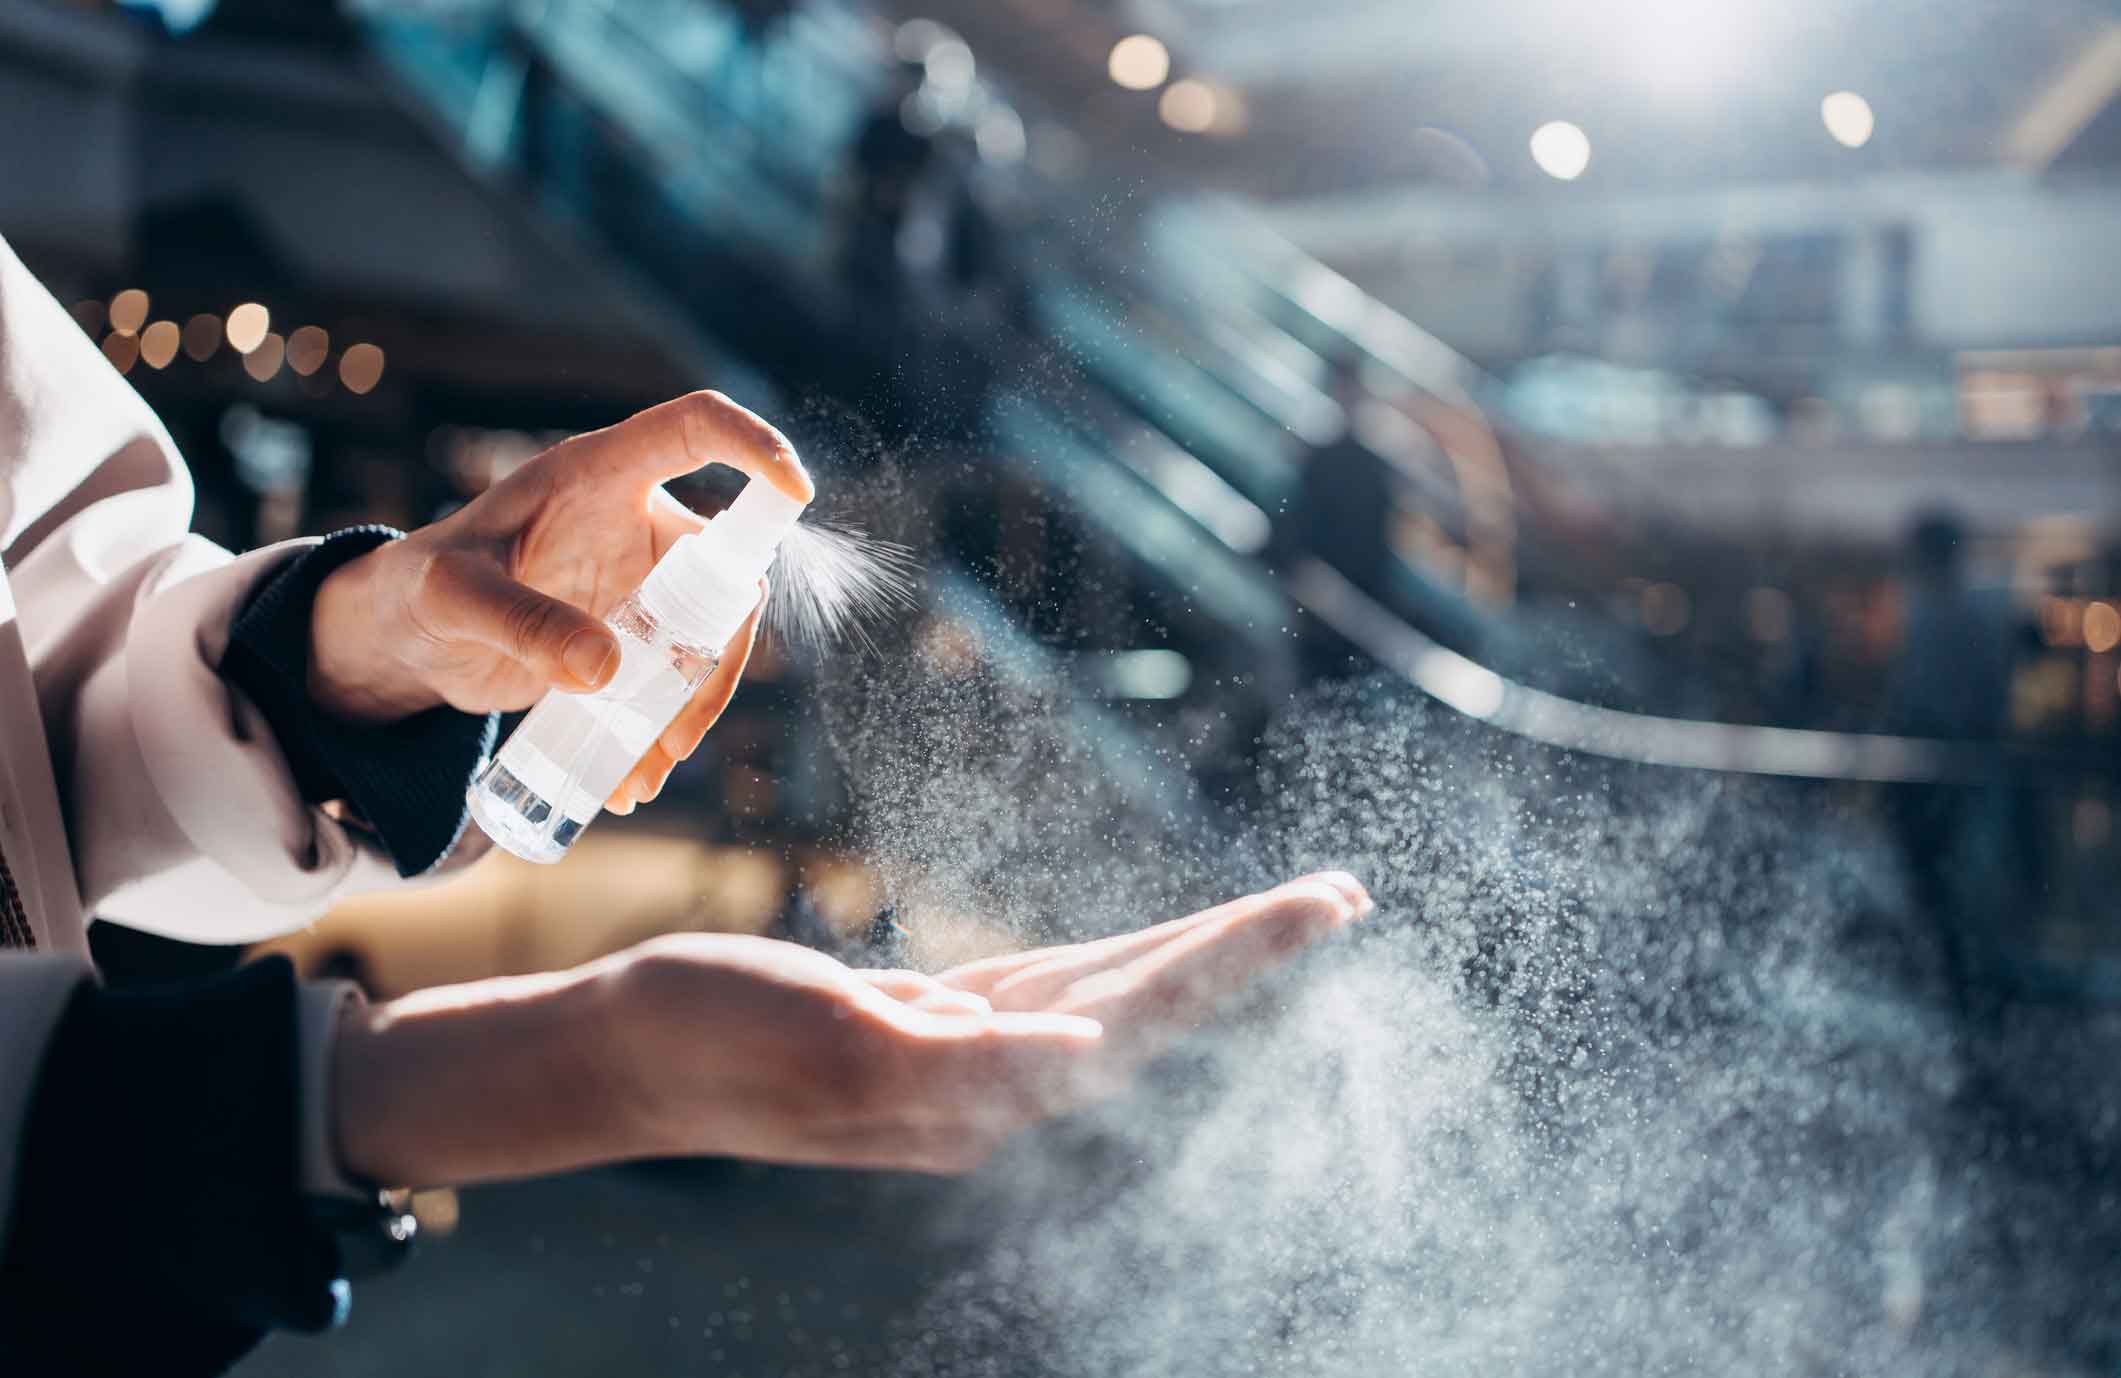 Safety tips for rubbing alcohol and poison prevention